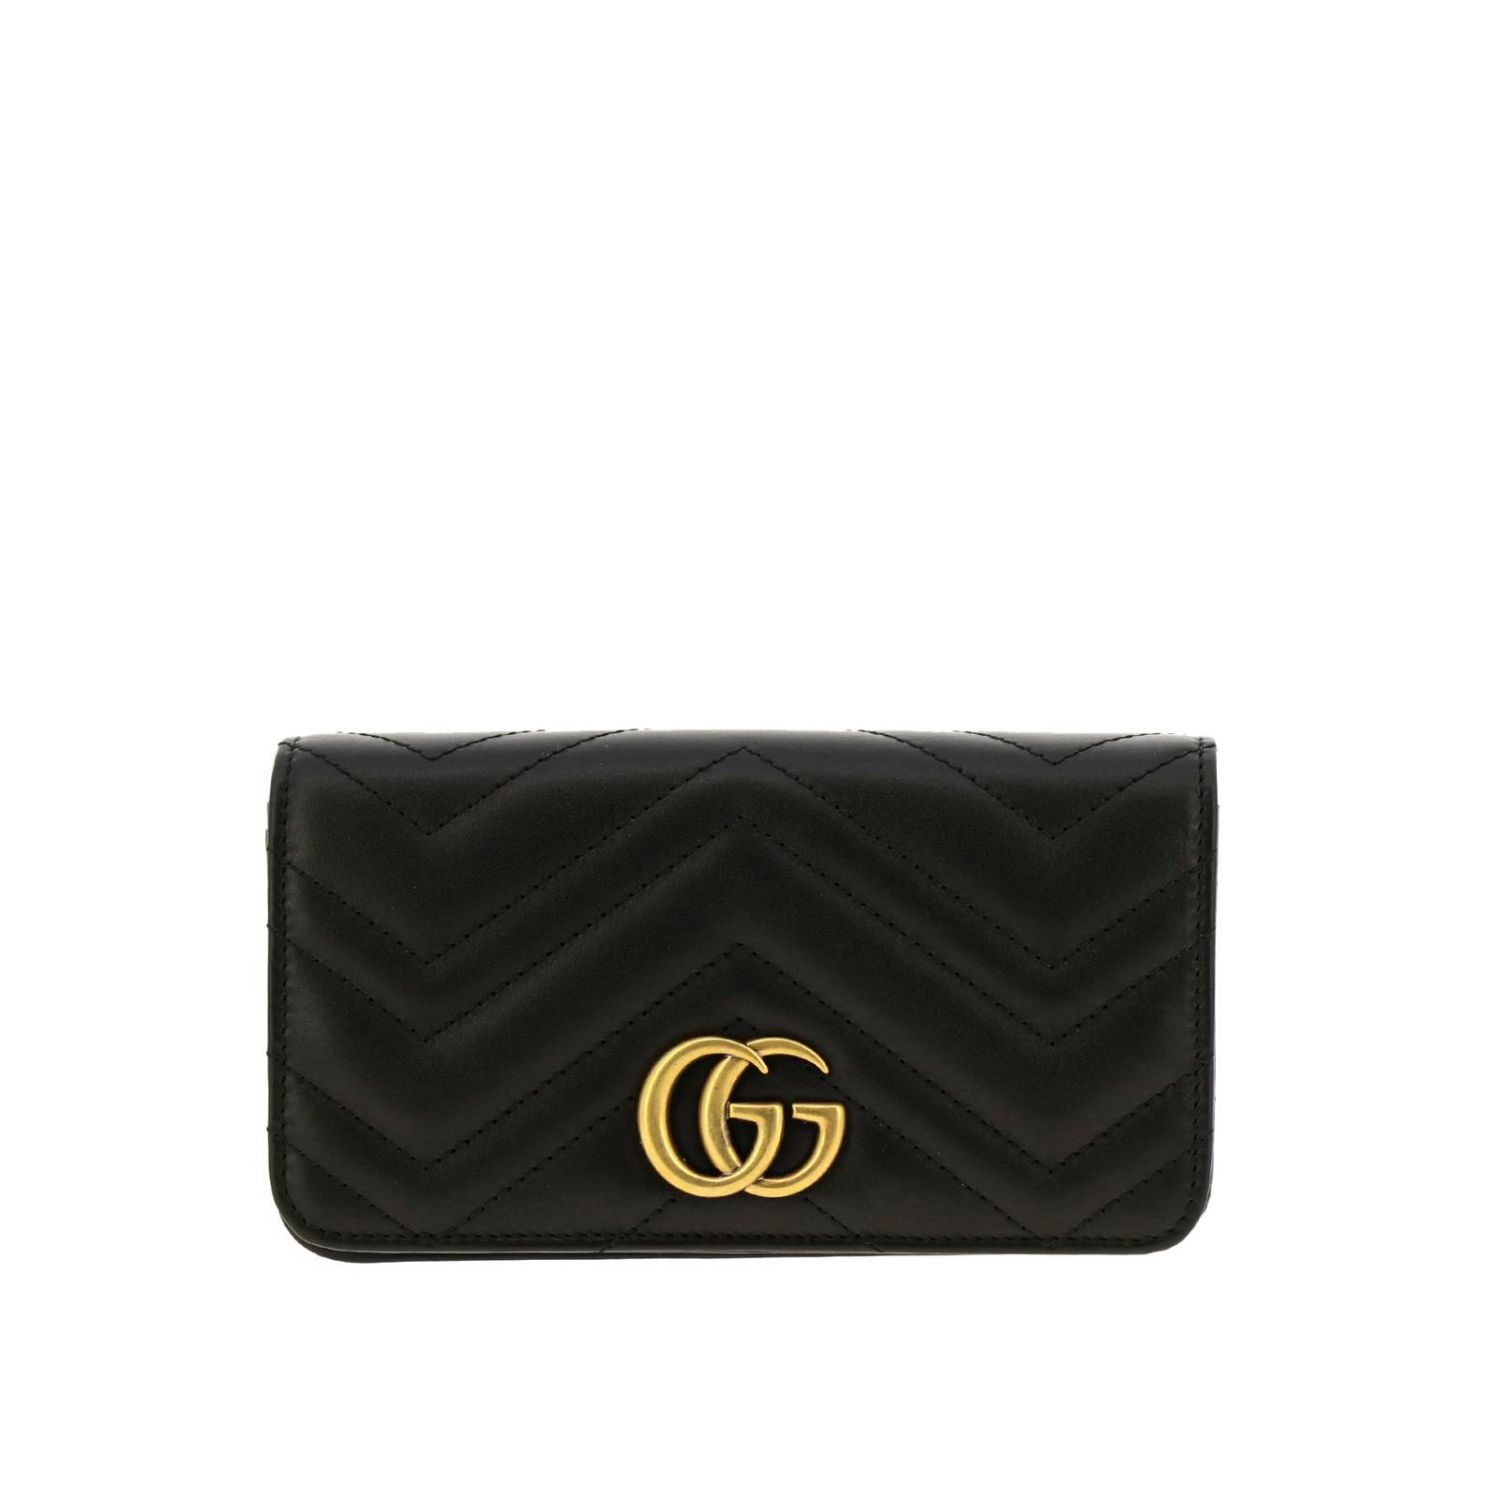 Mini bag Gucci: GG Marmont Gucci genuine quilted leather handbag with chevron pattern black 1